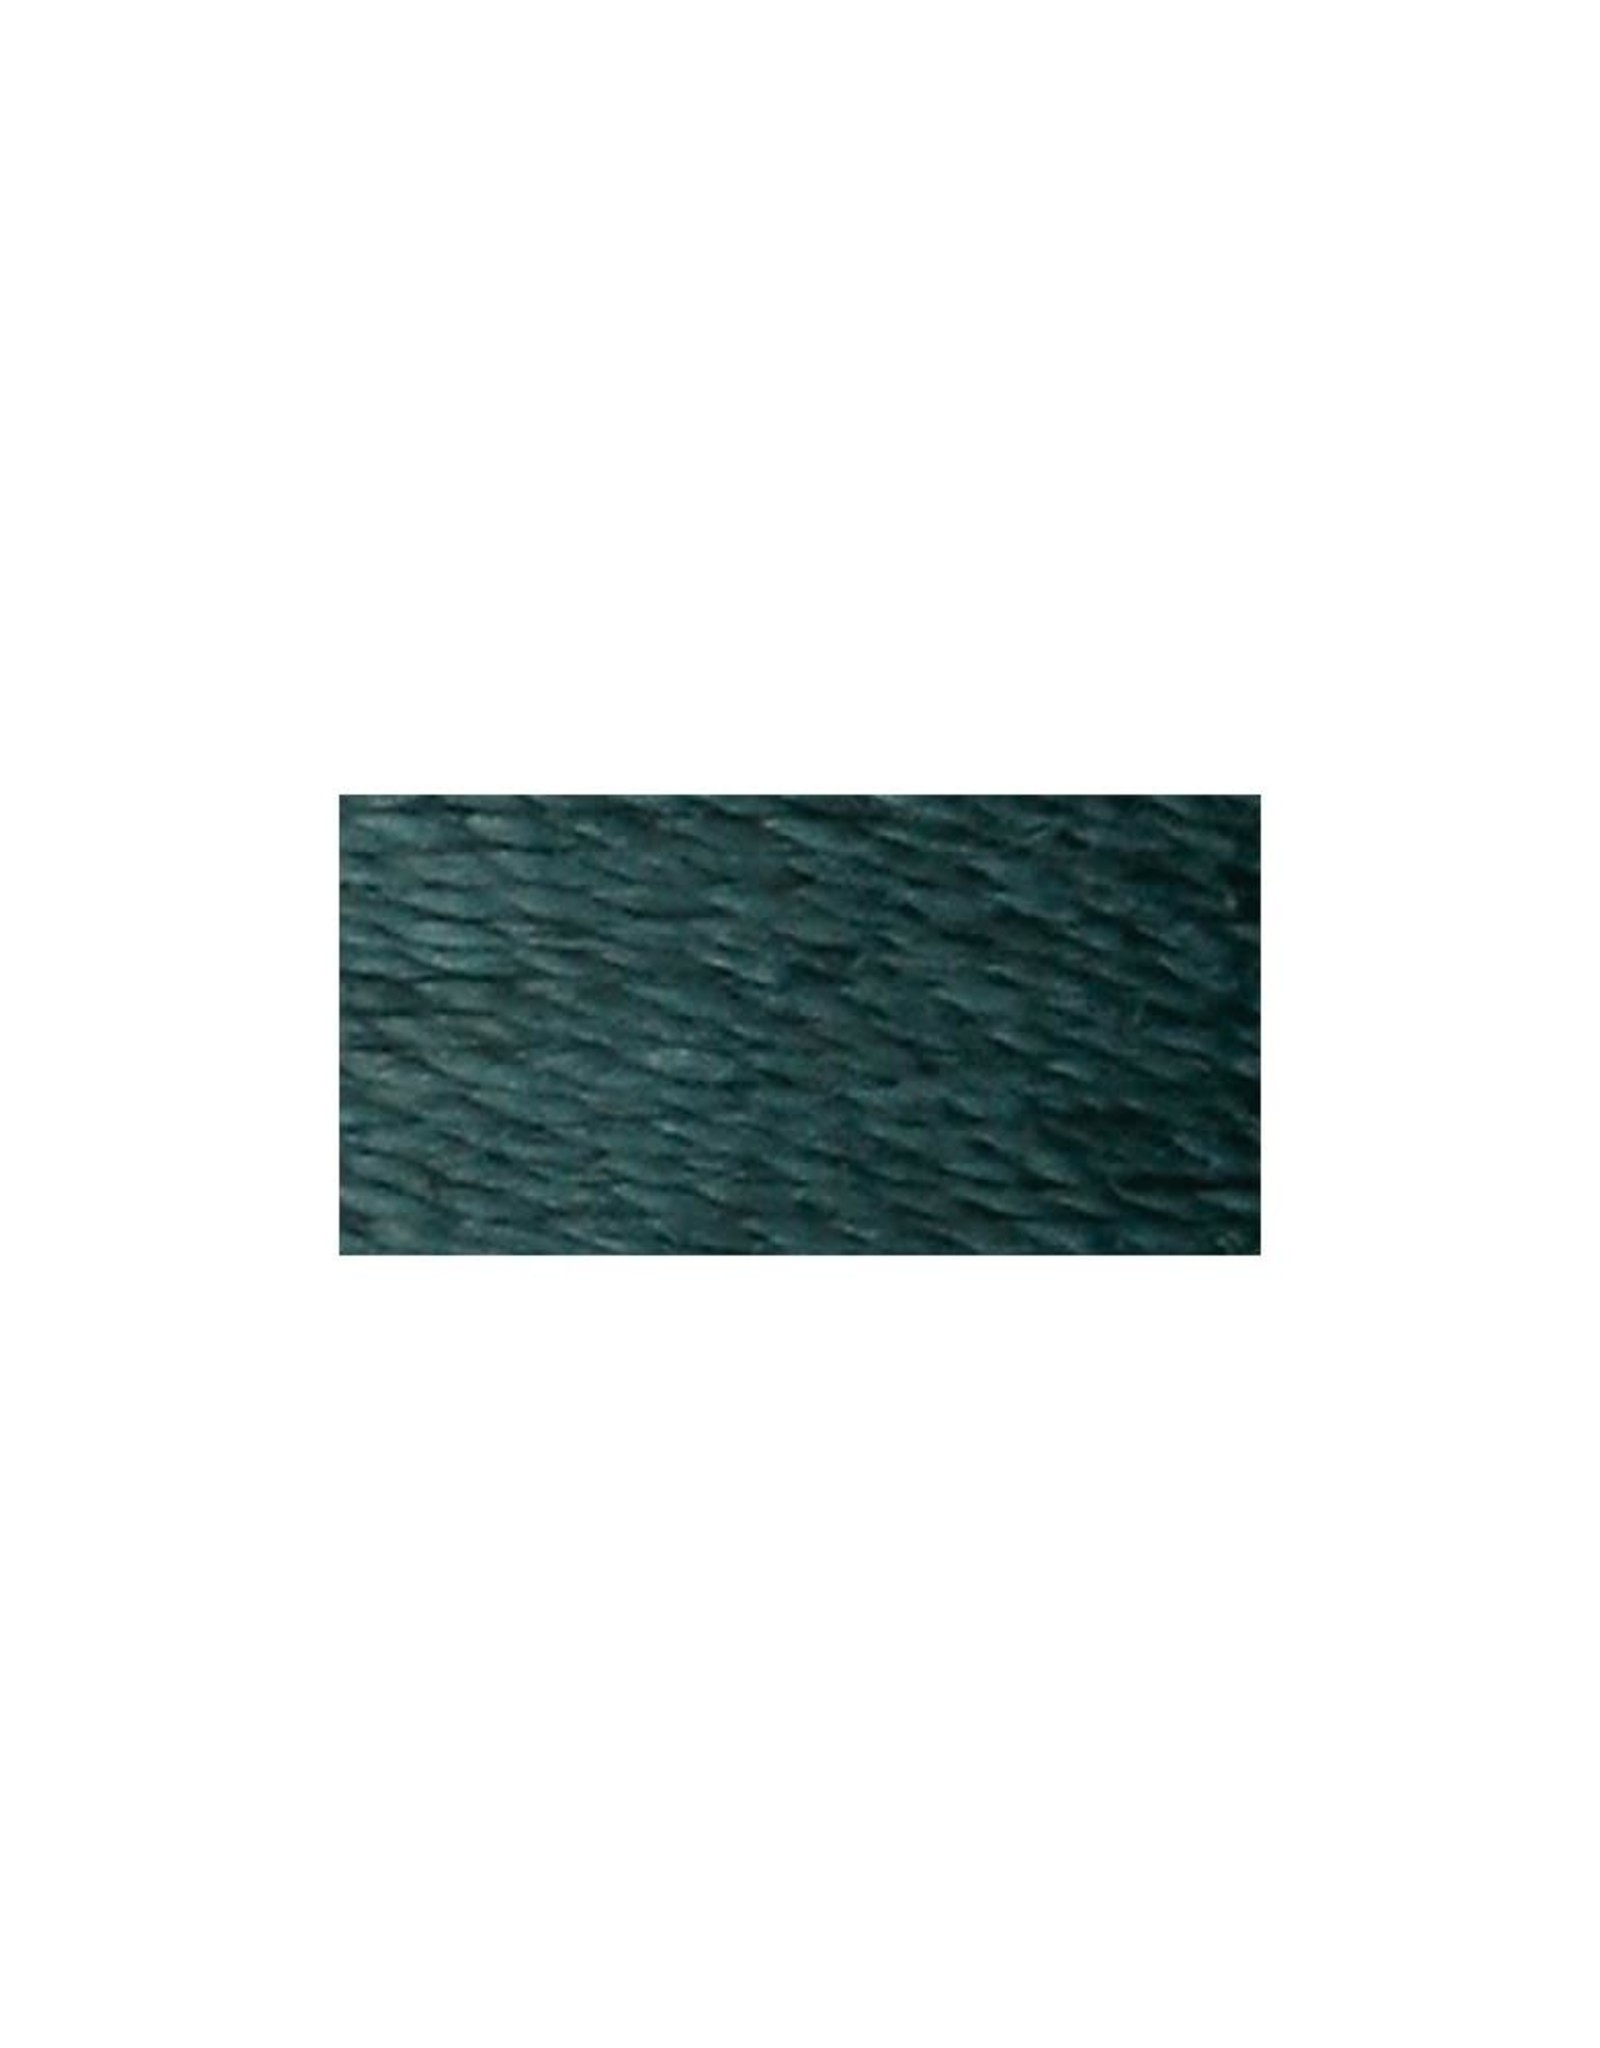 Dual Duty XP General Purpose Thread 250yd, Scots Green